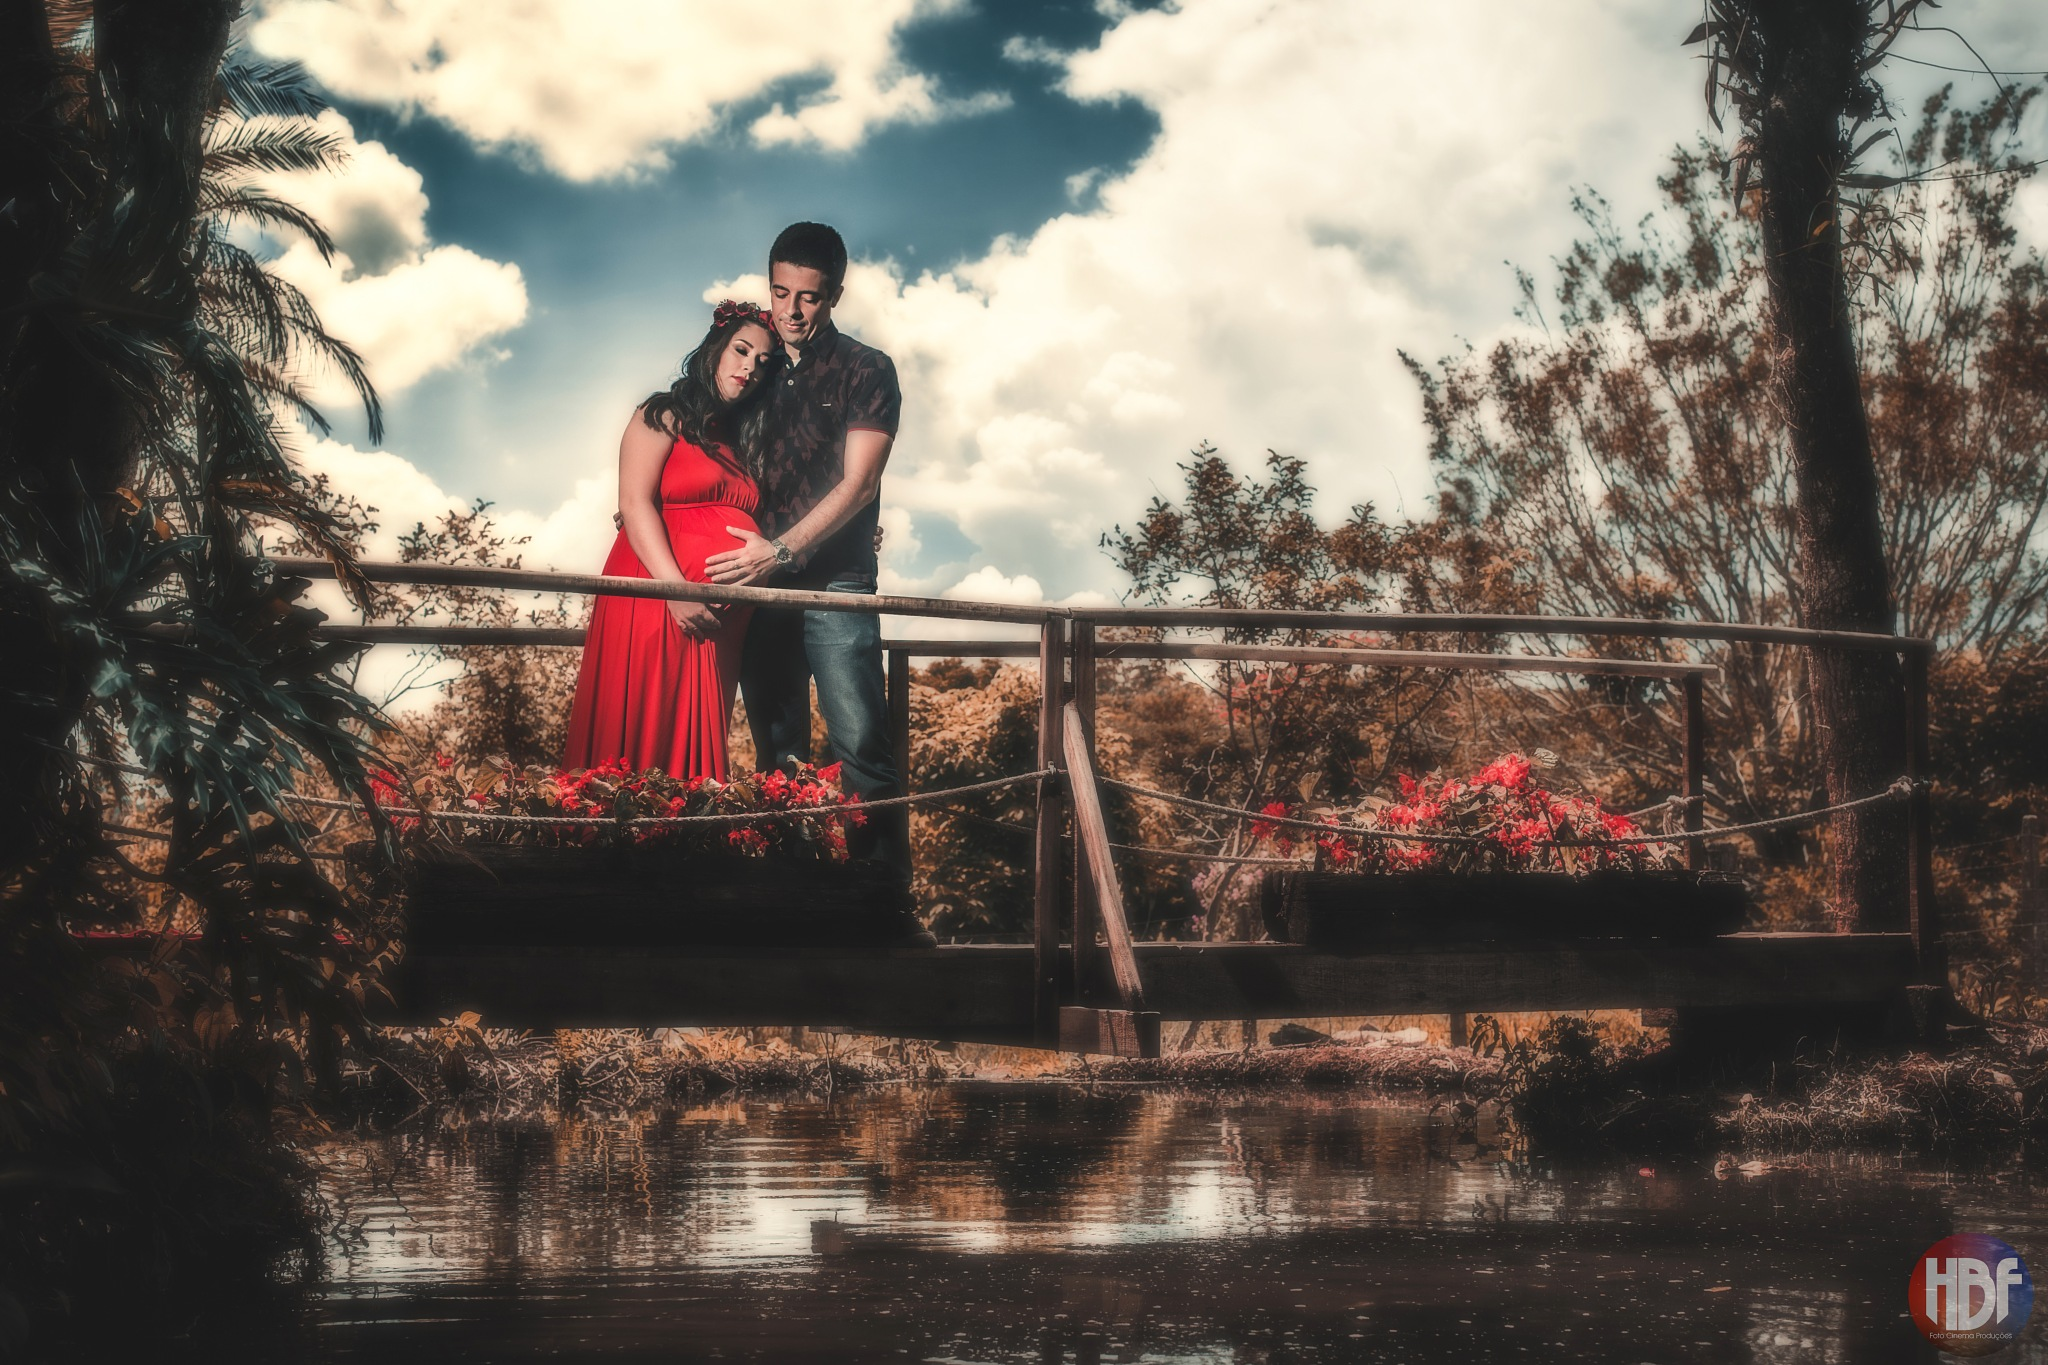 Maykel & Denise by Rony Karlos